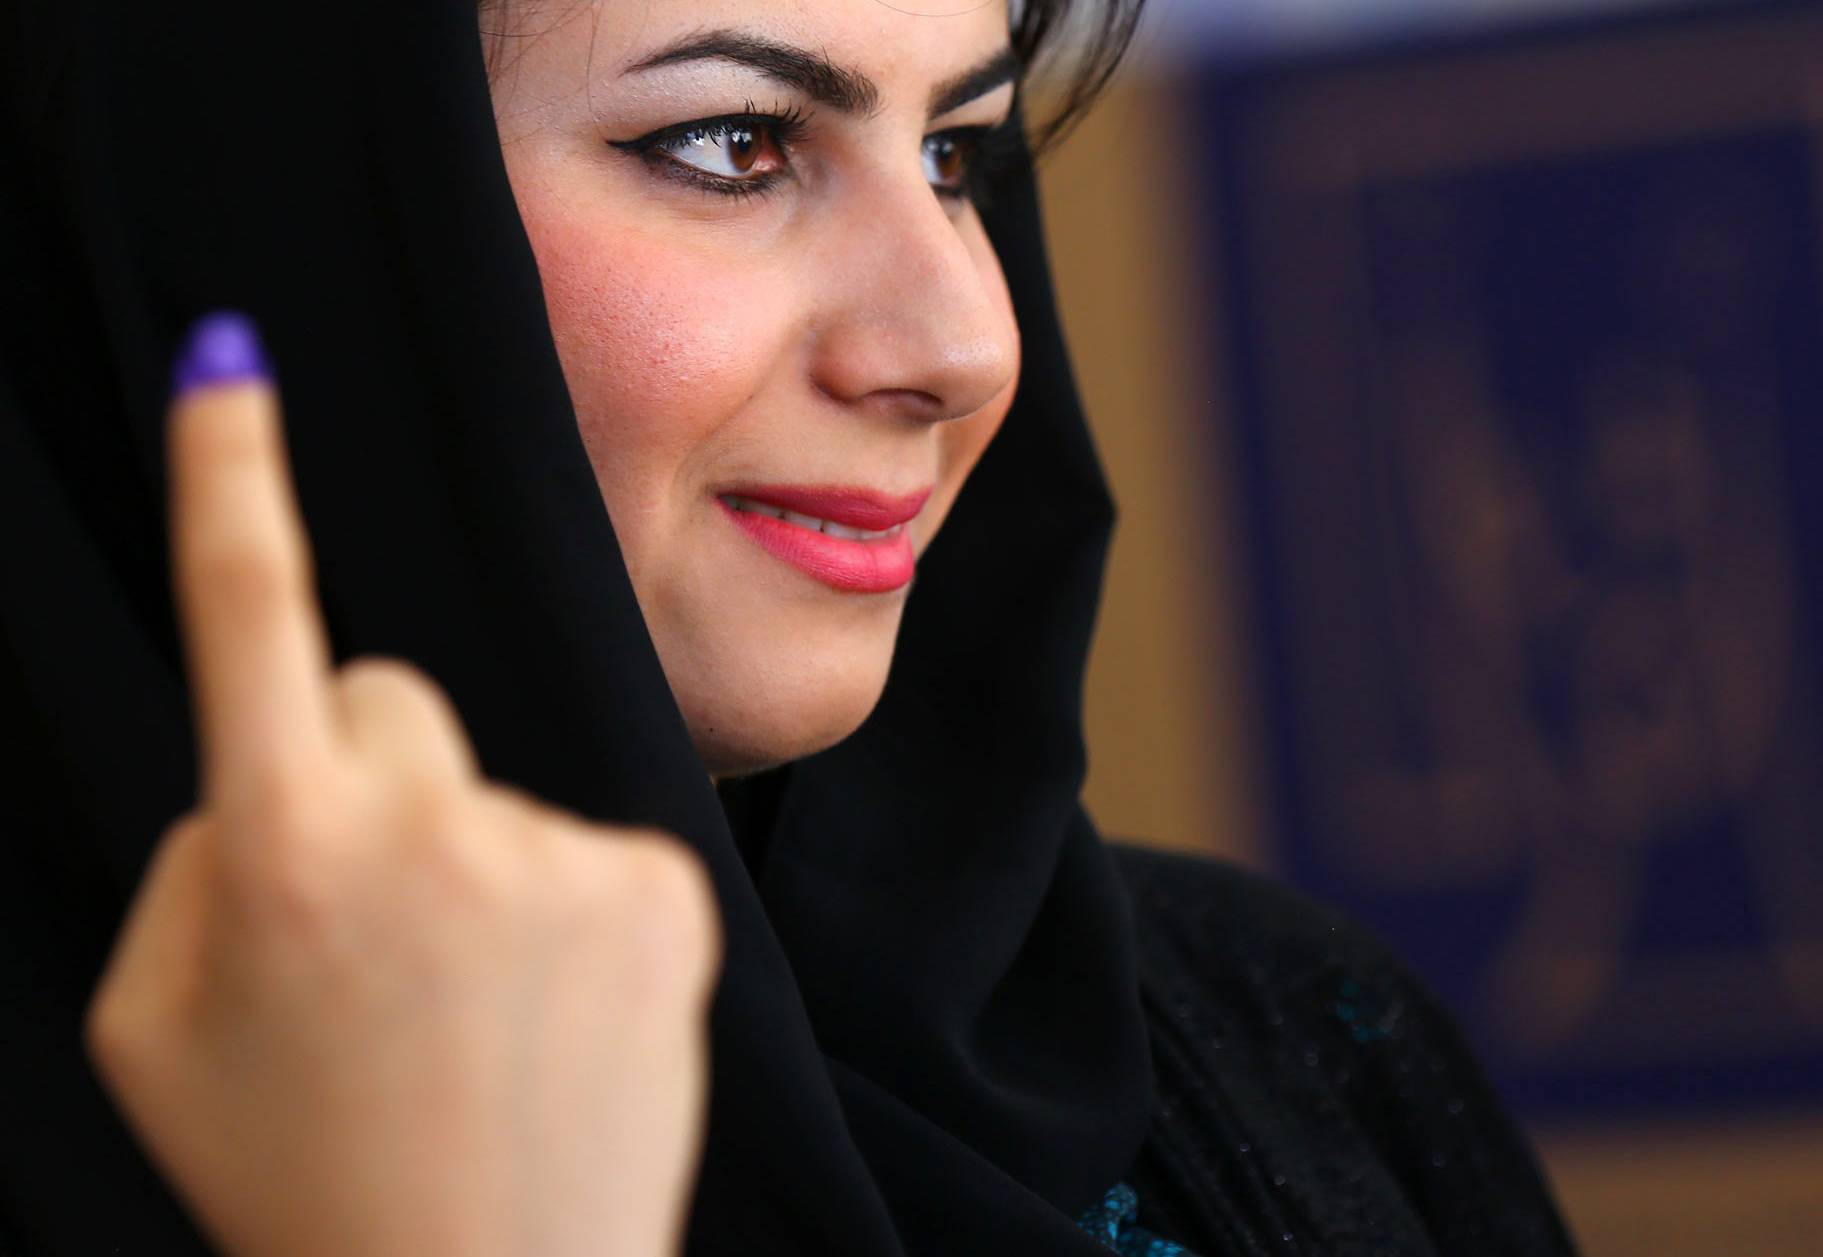 An Iraqi Kurdish woman shows her ink-stained finger after casting her vote at a polling station in Irbil, north of Baghdad, Iraq, Wednesday, April 30, 2014.